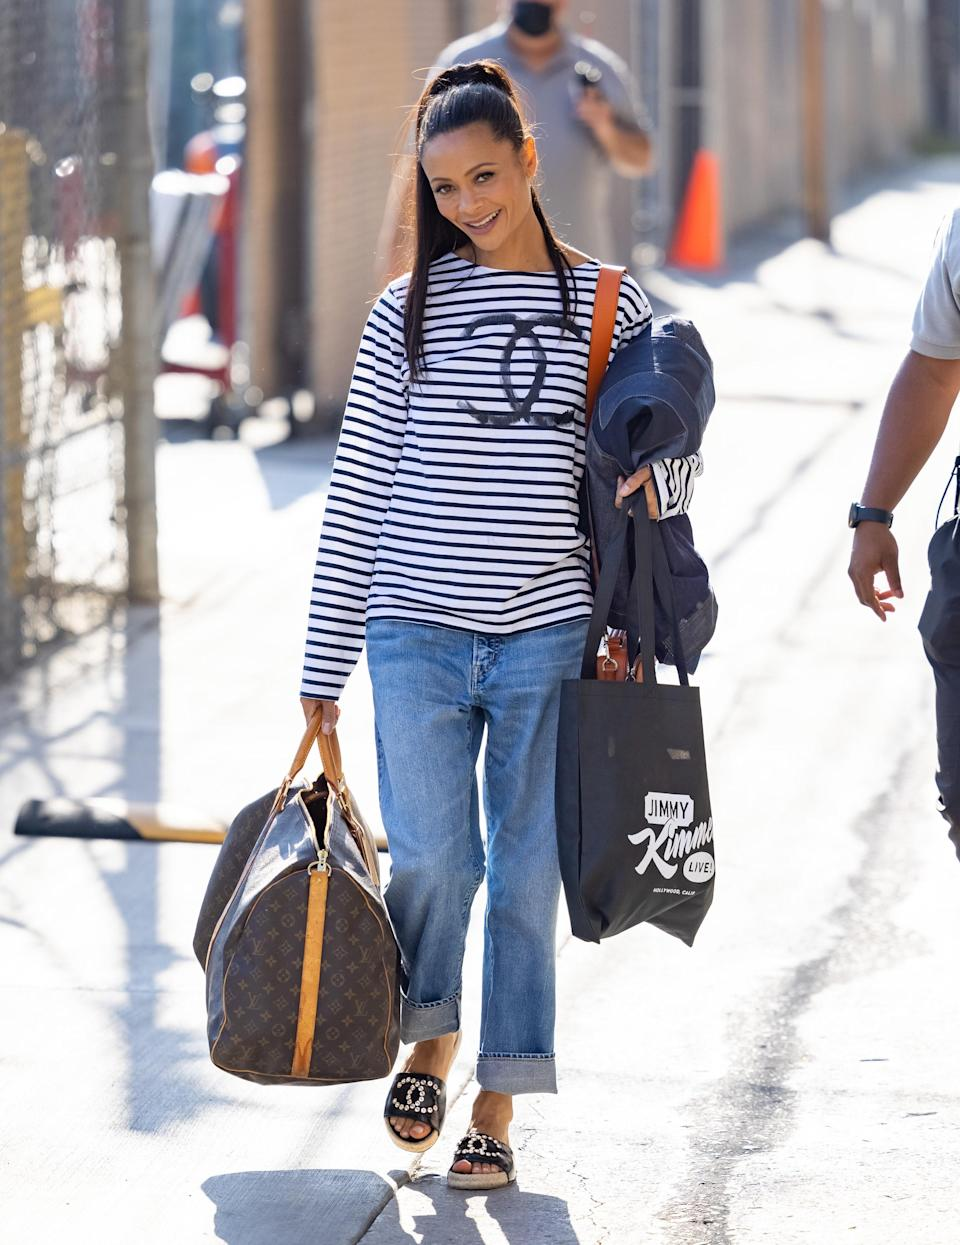 """Thandie Newton leaves the """"Jimmy Kimmel Live!"""" studios in Los Angeles. - Credit: RB/Bauergriffin.com / MEGA"""